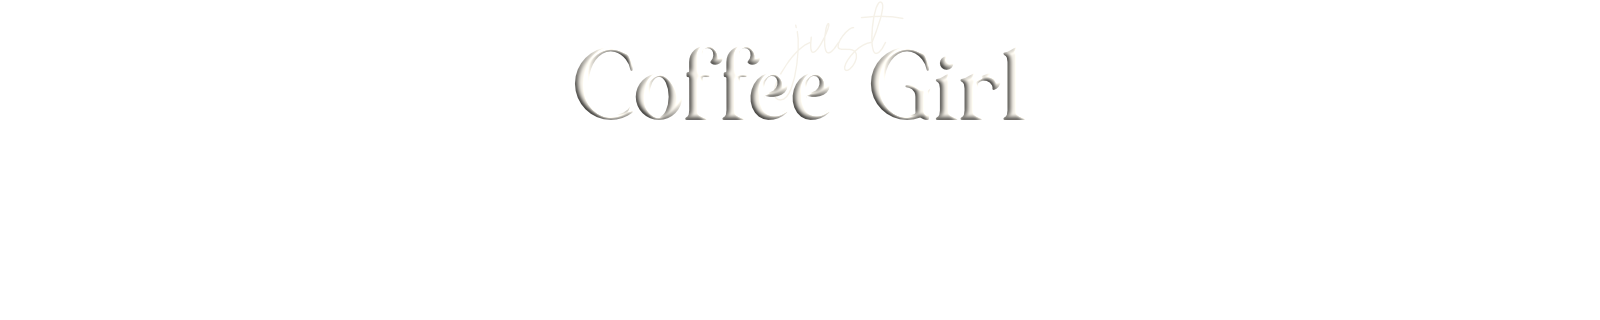 Just Coffee Girl